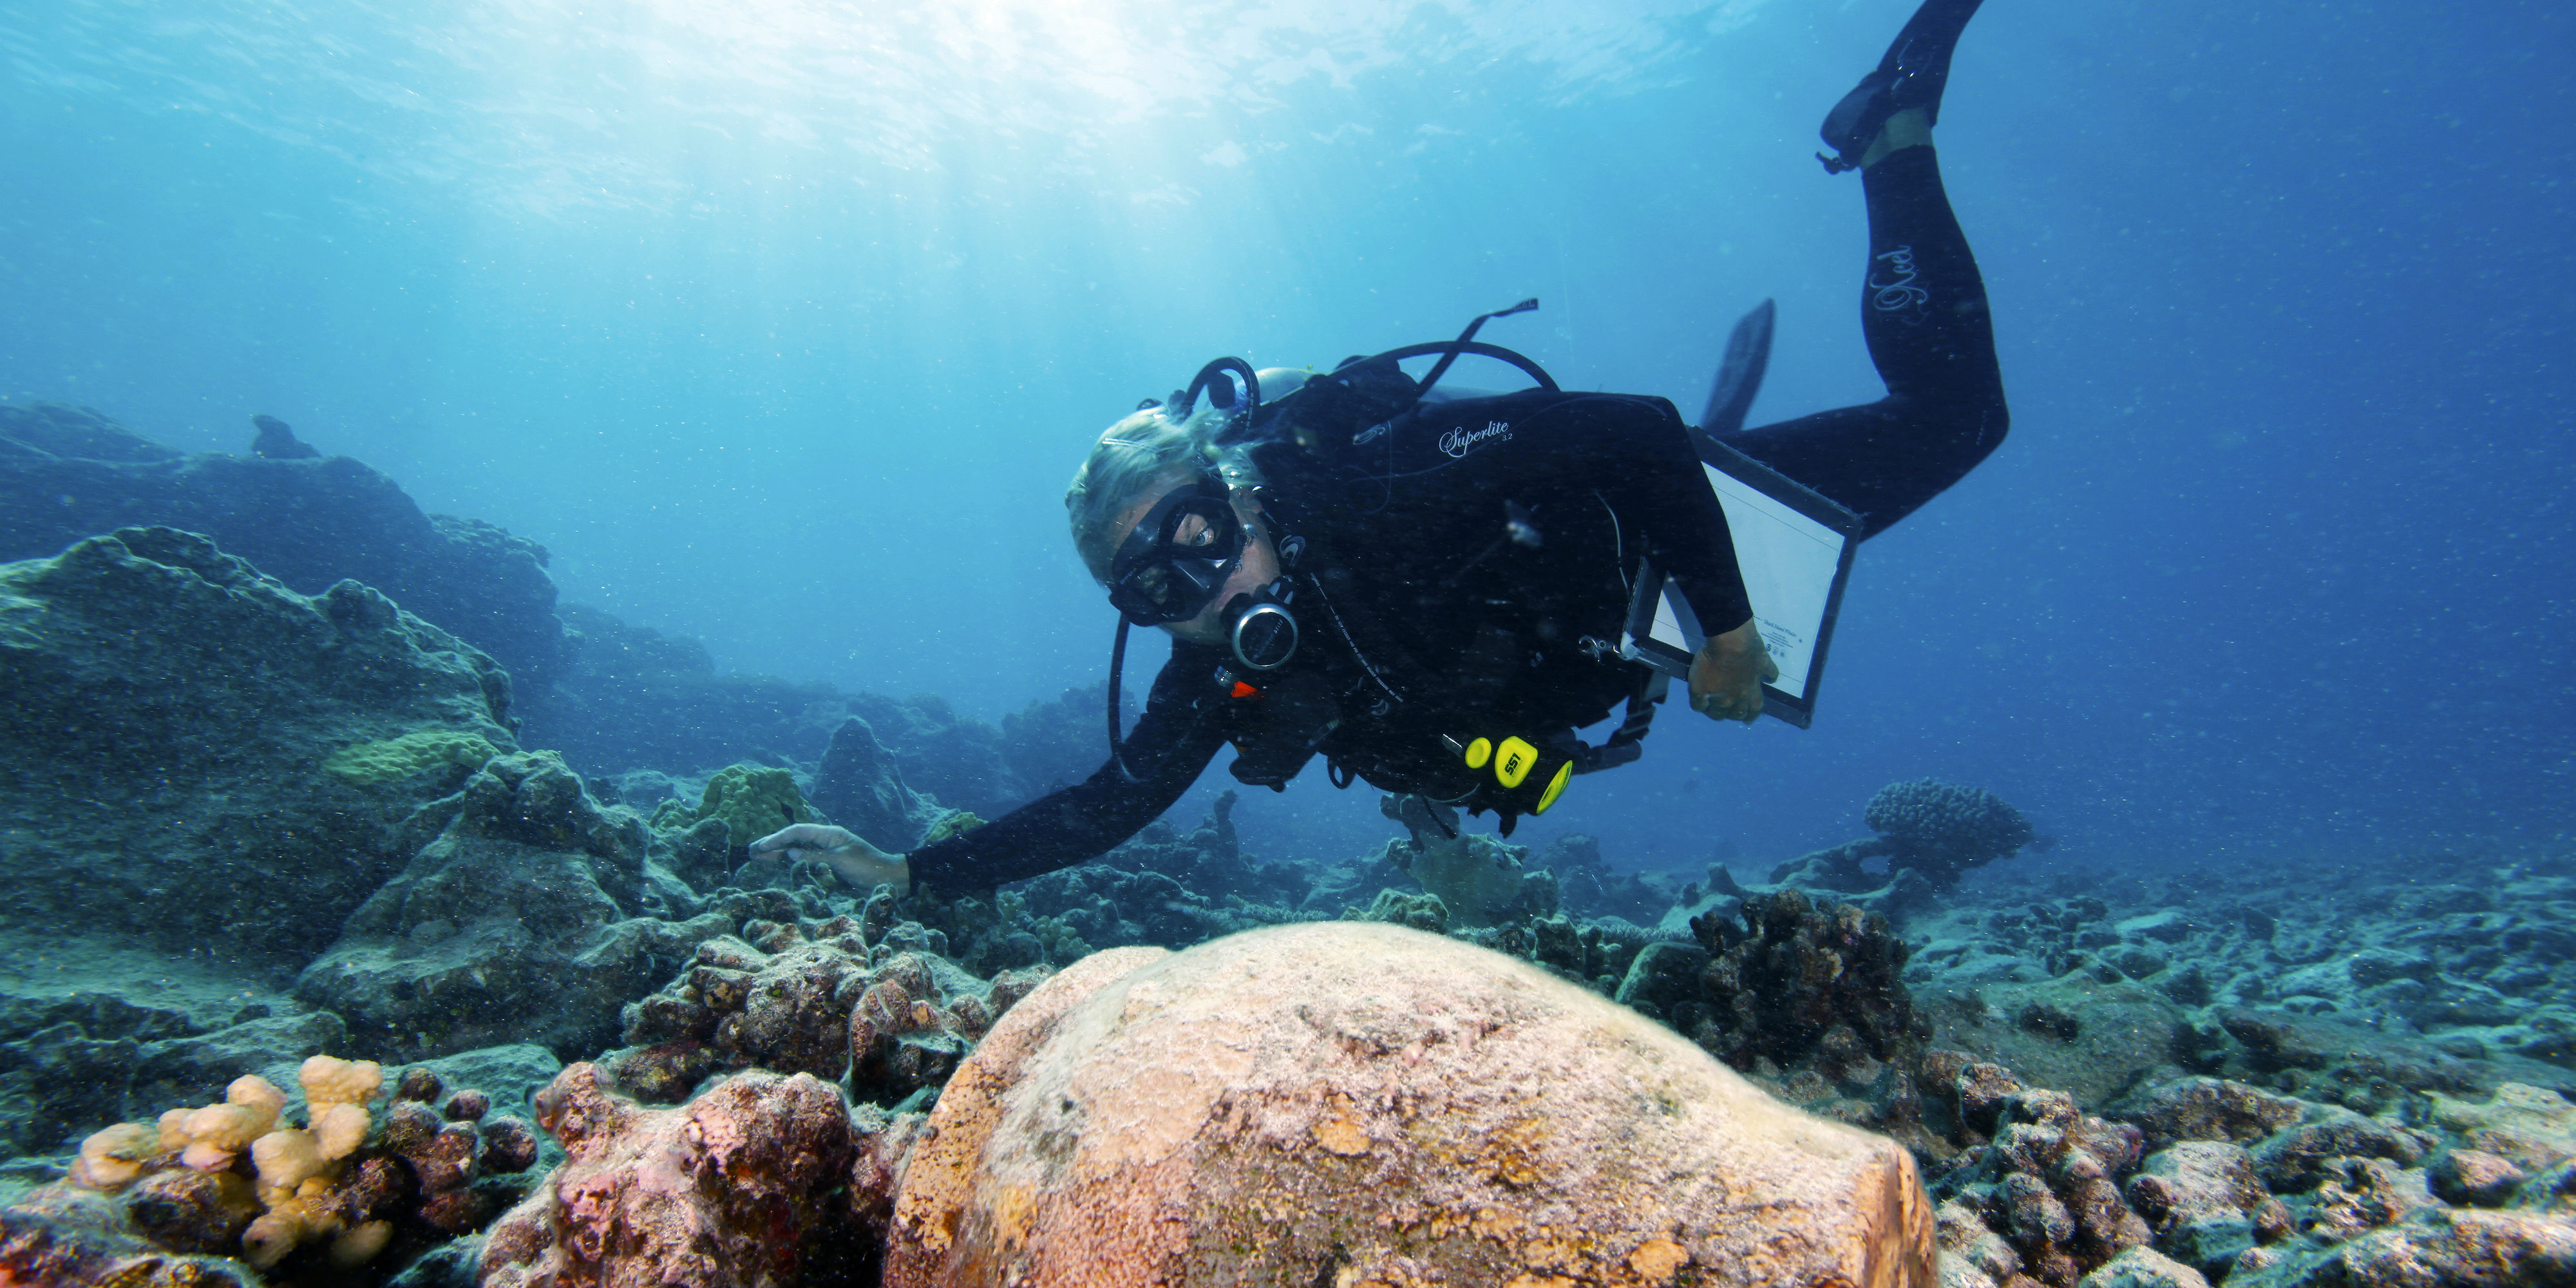 This marine archeologist studies a ginger jar from a shipwreck. Marine archaeology is one of many scuba diving jobs available to PADI pros.